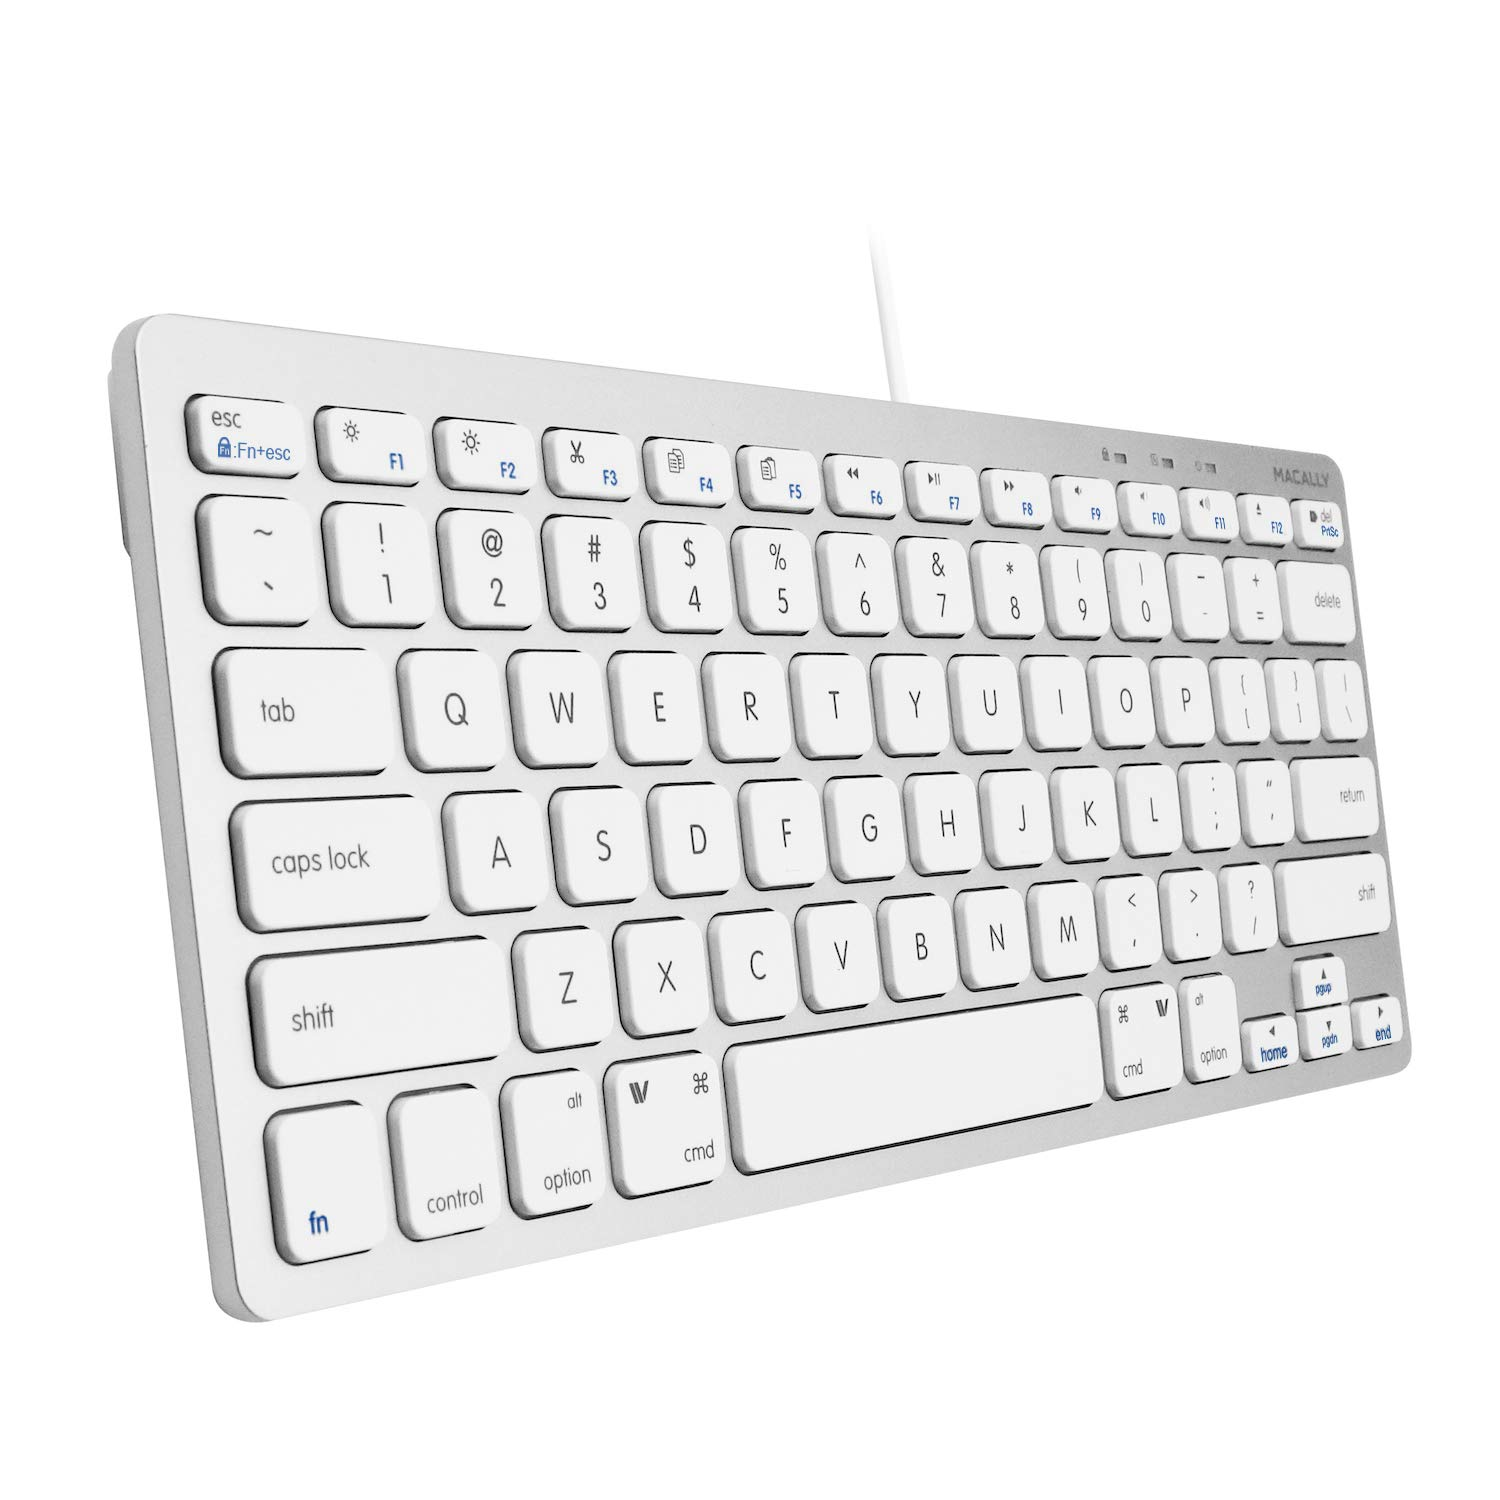 Aluminum Silver Compatible with Apple Mac Mini//iMac Desktops MacBook Pro//Air Laptops and Windows PC Notebook Computers Macally USB Wired Compact Keyboard Small /& Slim Design Aluminum